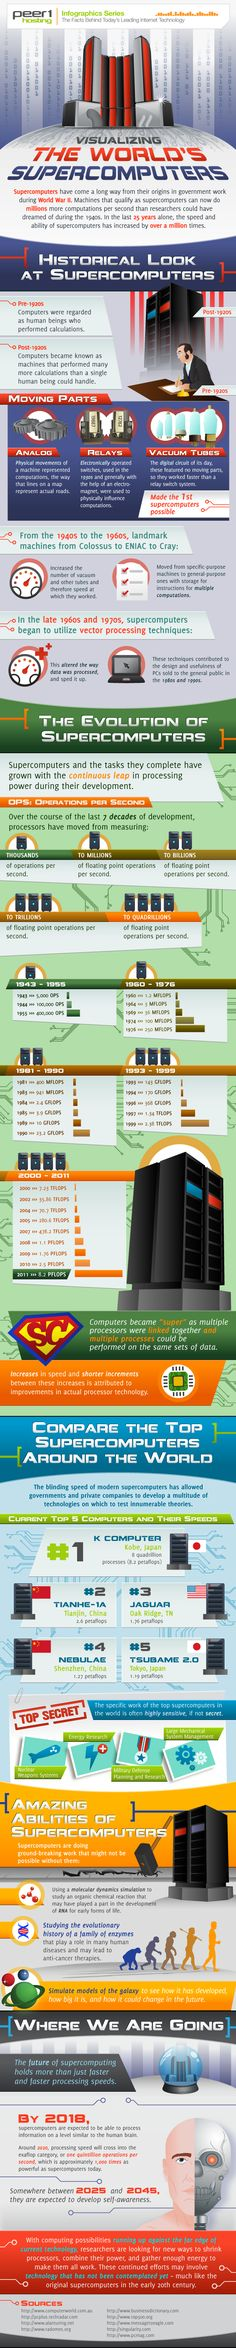 The Journey from Computers to Super Computers (and Beyond) #infographic [ via http://twitter.com/12C4 ]